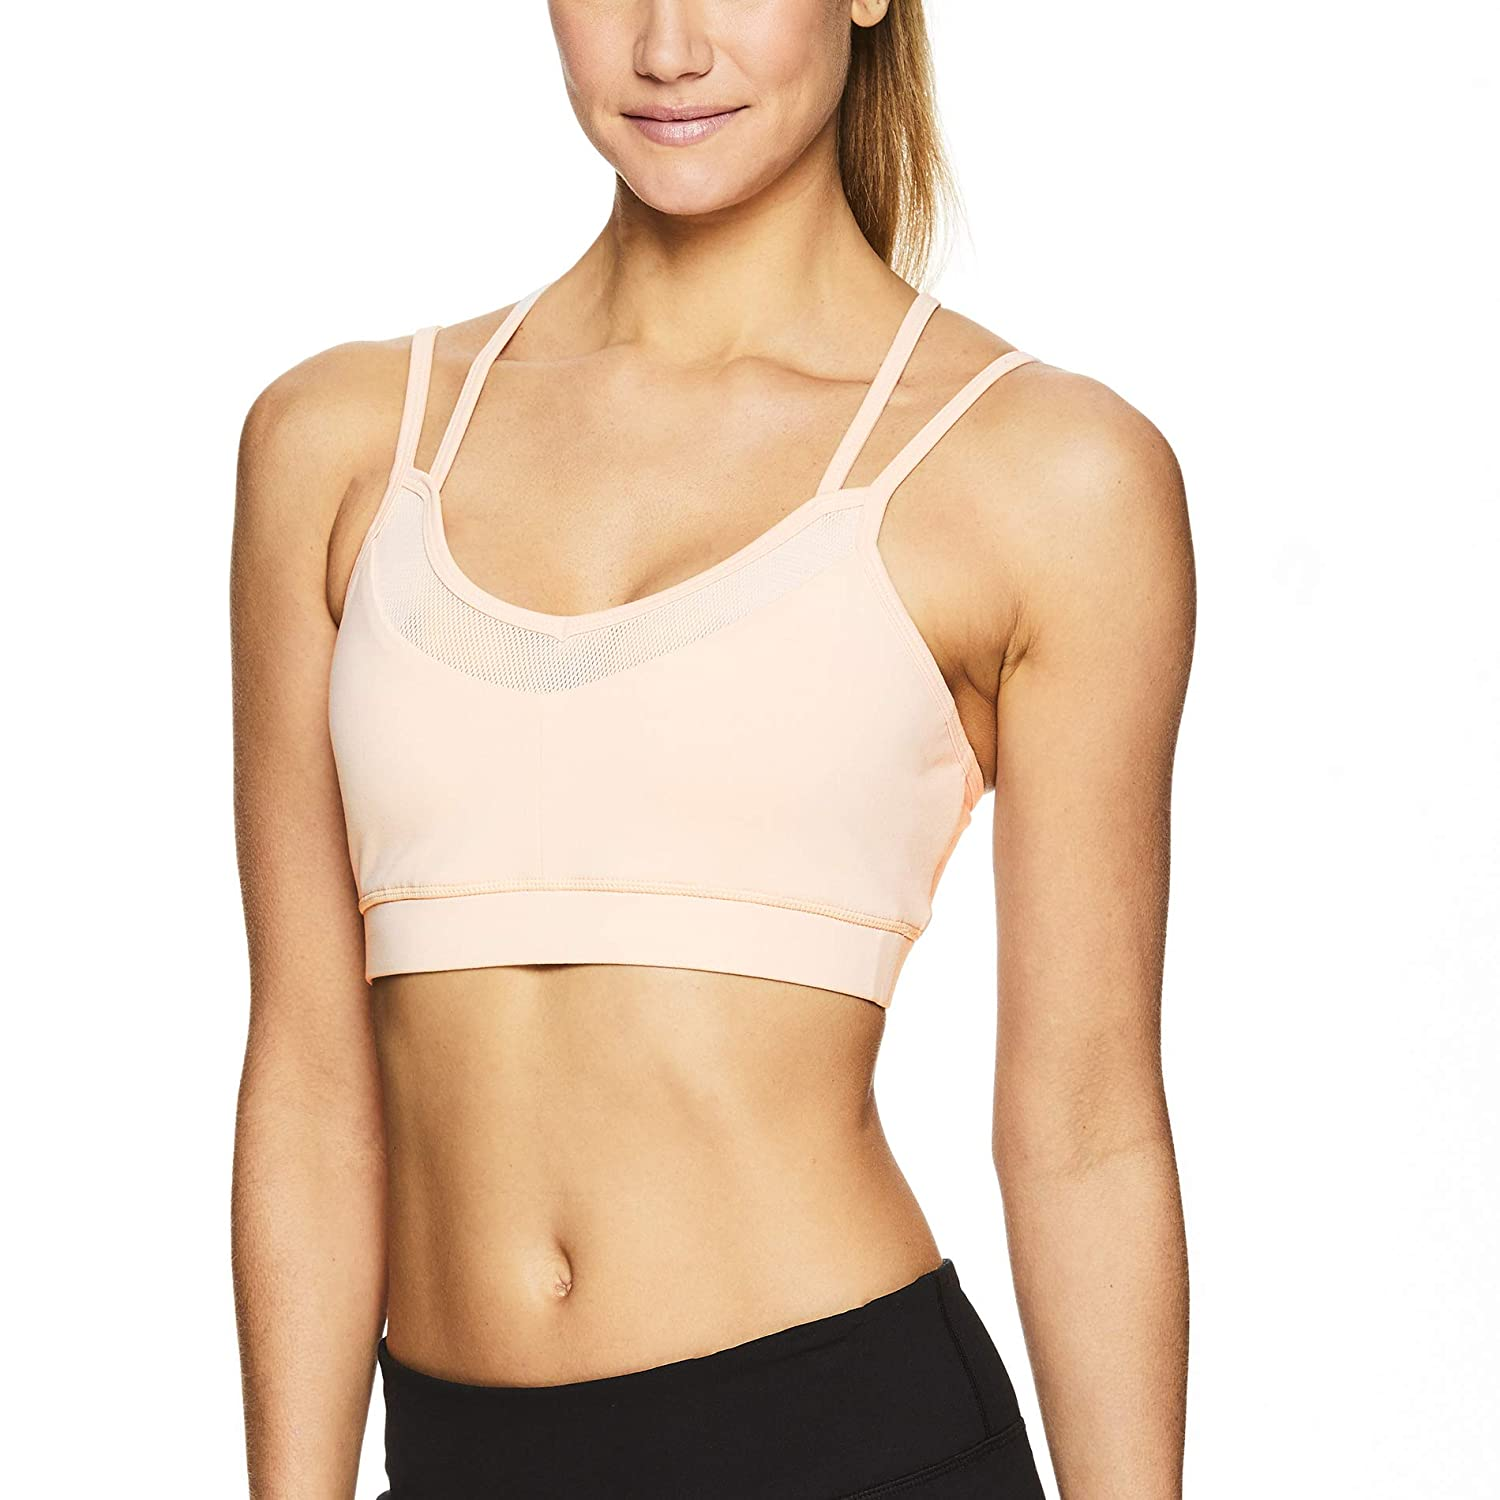 Gaiam Women's Strappy Wireless Sports Bra - Medium Impact Racerback Workout & Yoga Bralette P000476350